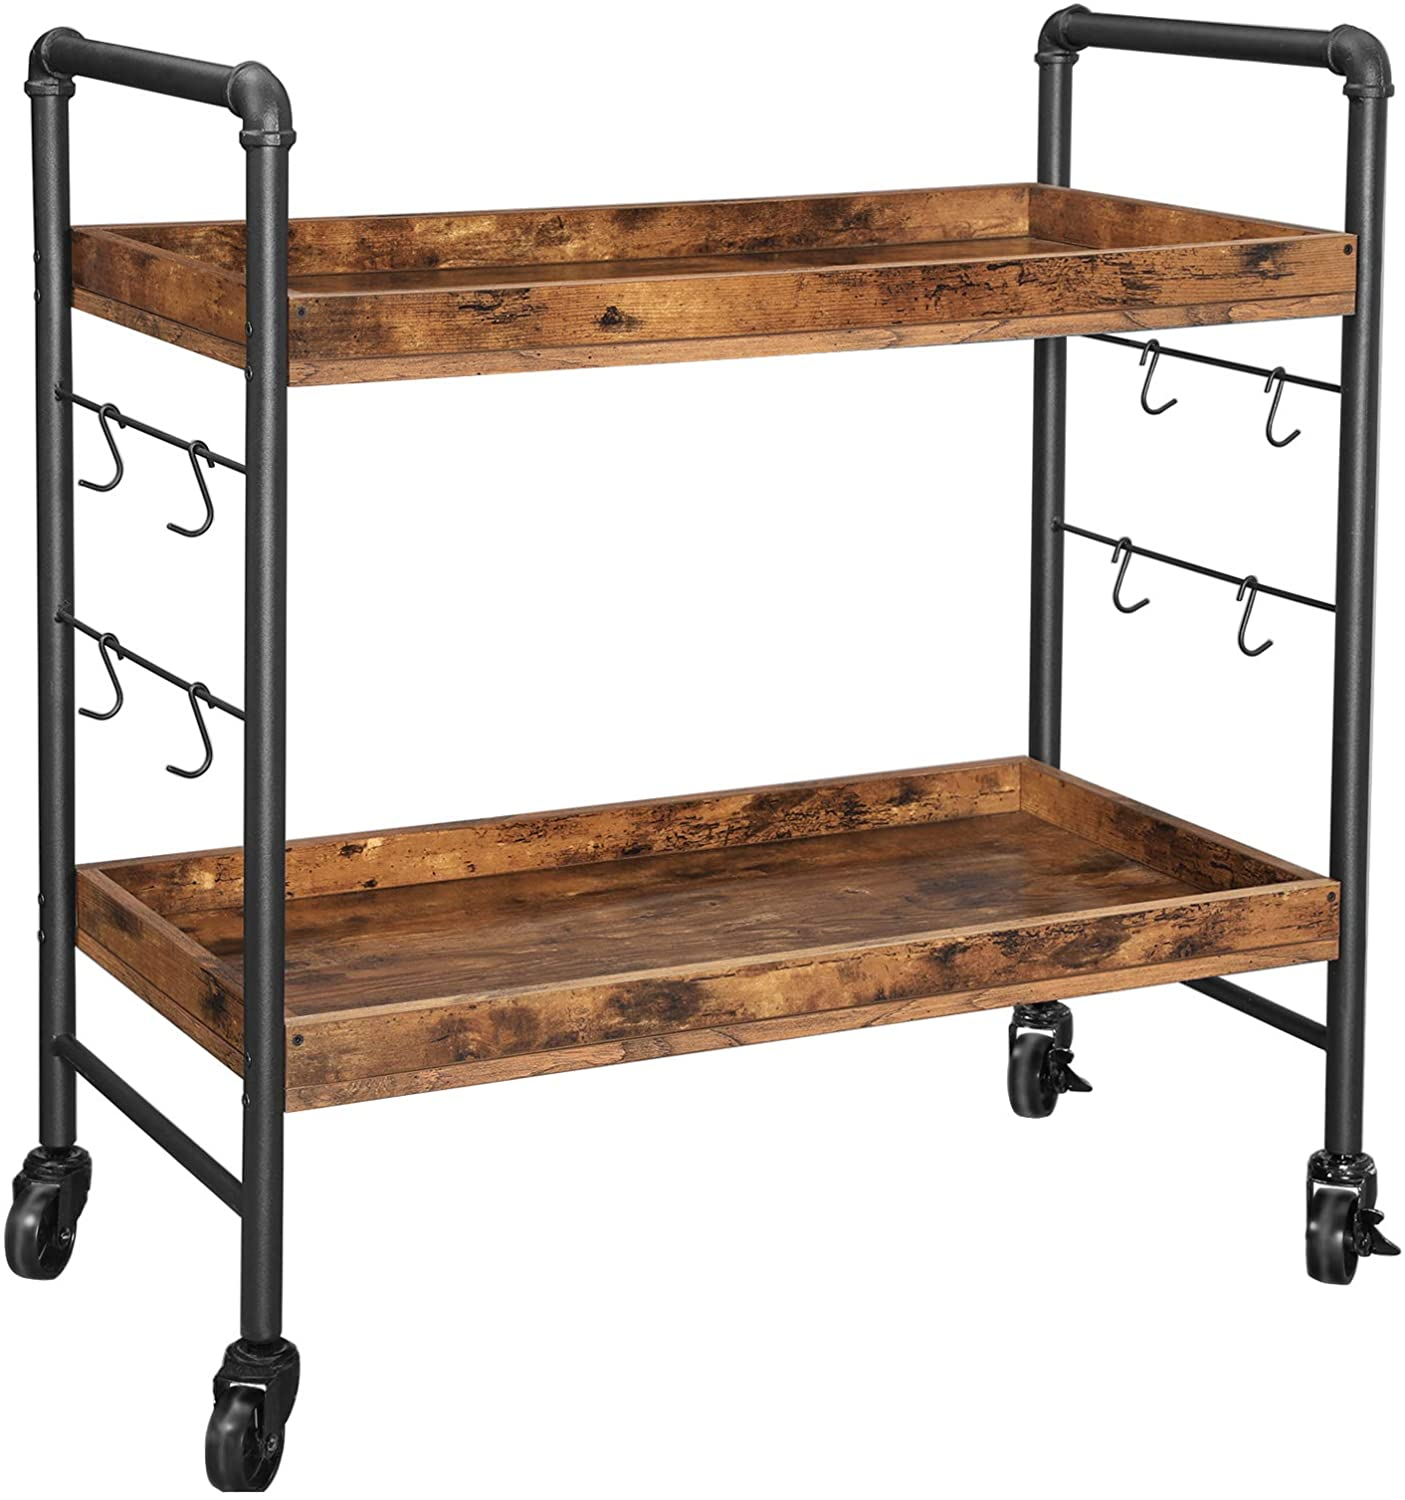 Enjoy fast, free nationwide shipping!  Owned by a husband and wife team of high-school music teachers, HawkinsWoodshop.com is your one stop shop for affordable furniture.  Shop HawkinsWoodshop.com for solid wood & metal modern, traditional, contemporary, industrial, custom, rustic, and farmhouse furniture including our Ryan Universal Casters Kitchen Cart.